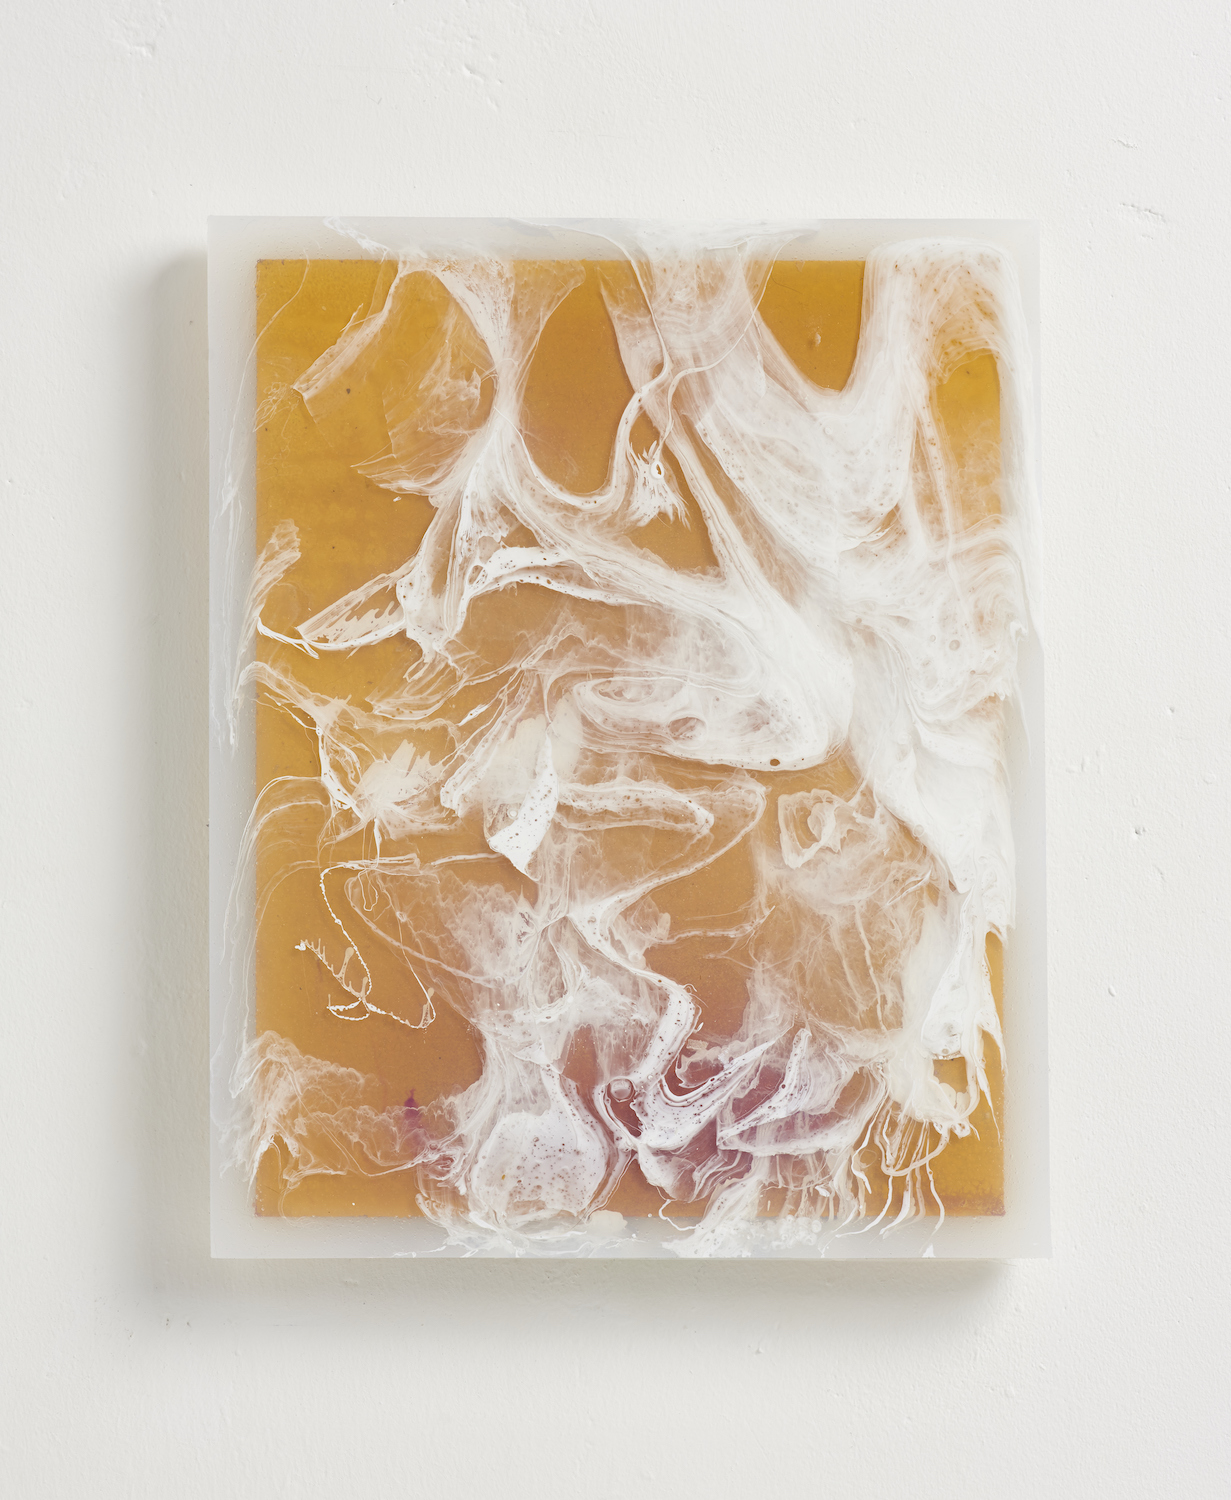 Charlie Godet Thomas, Endpaper (A Hint Half Guessed), 2015. Cast rubber, wood, pigment. 29 x 23.5 x 2 cm.